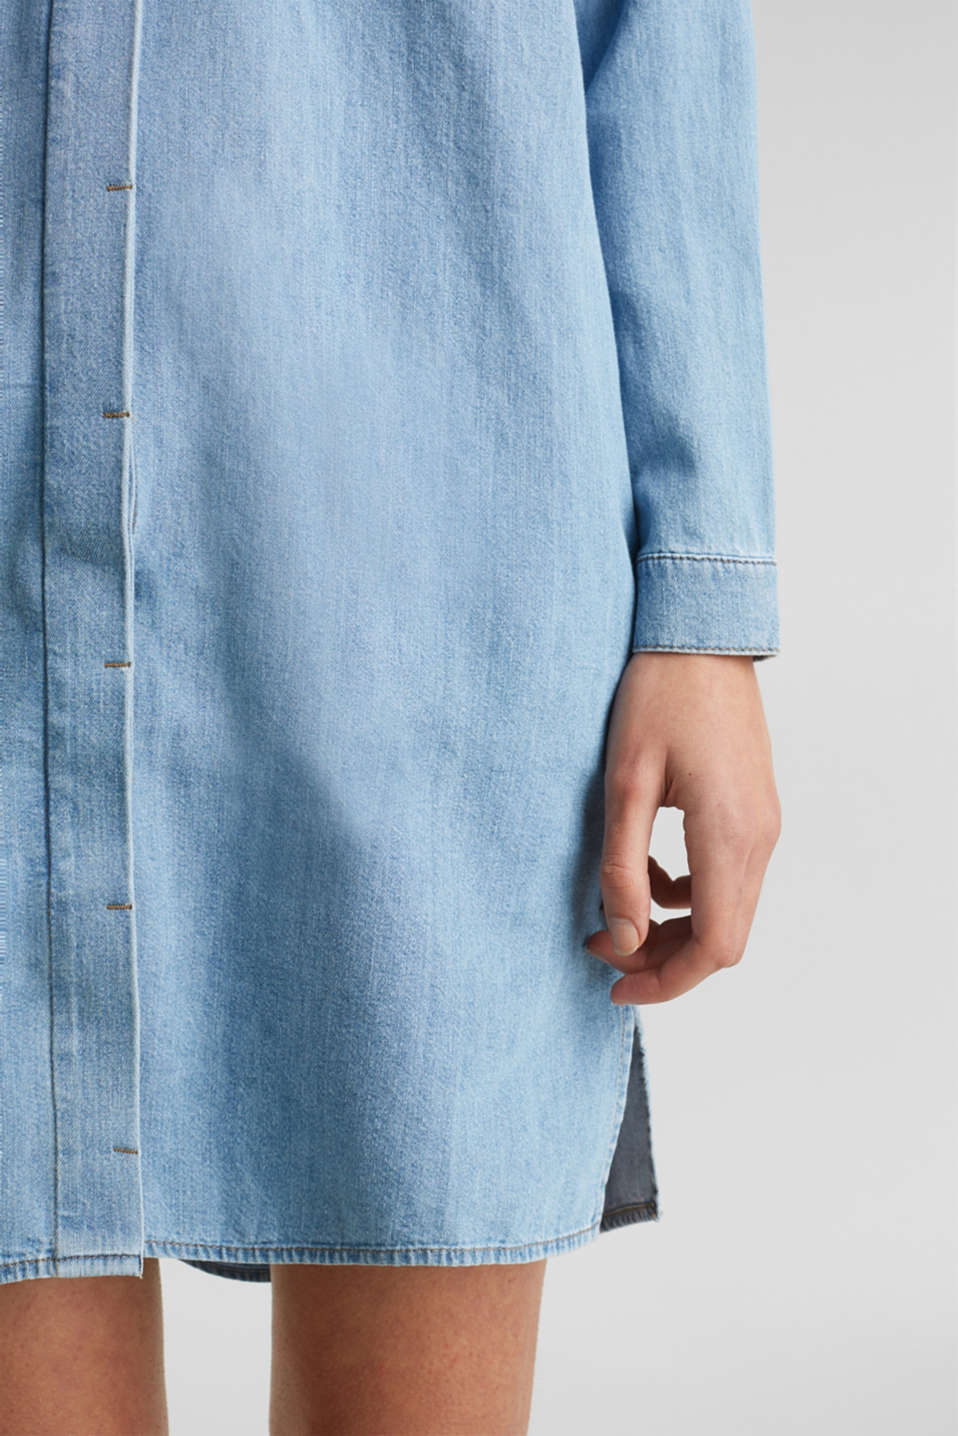 100% cotton denim shirt dress, BLUE LIGHT WASH, detail image number 6